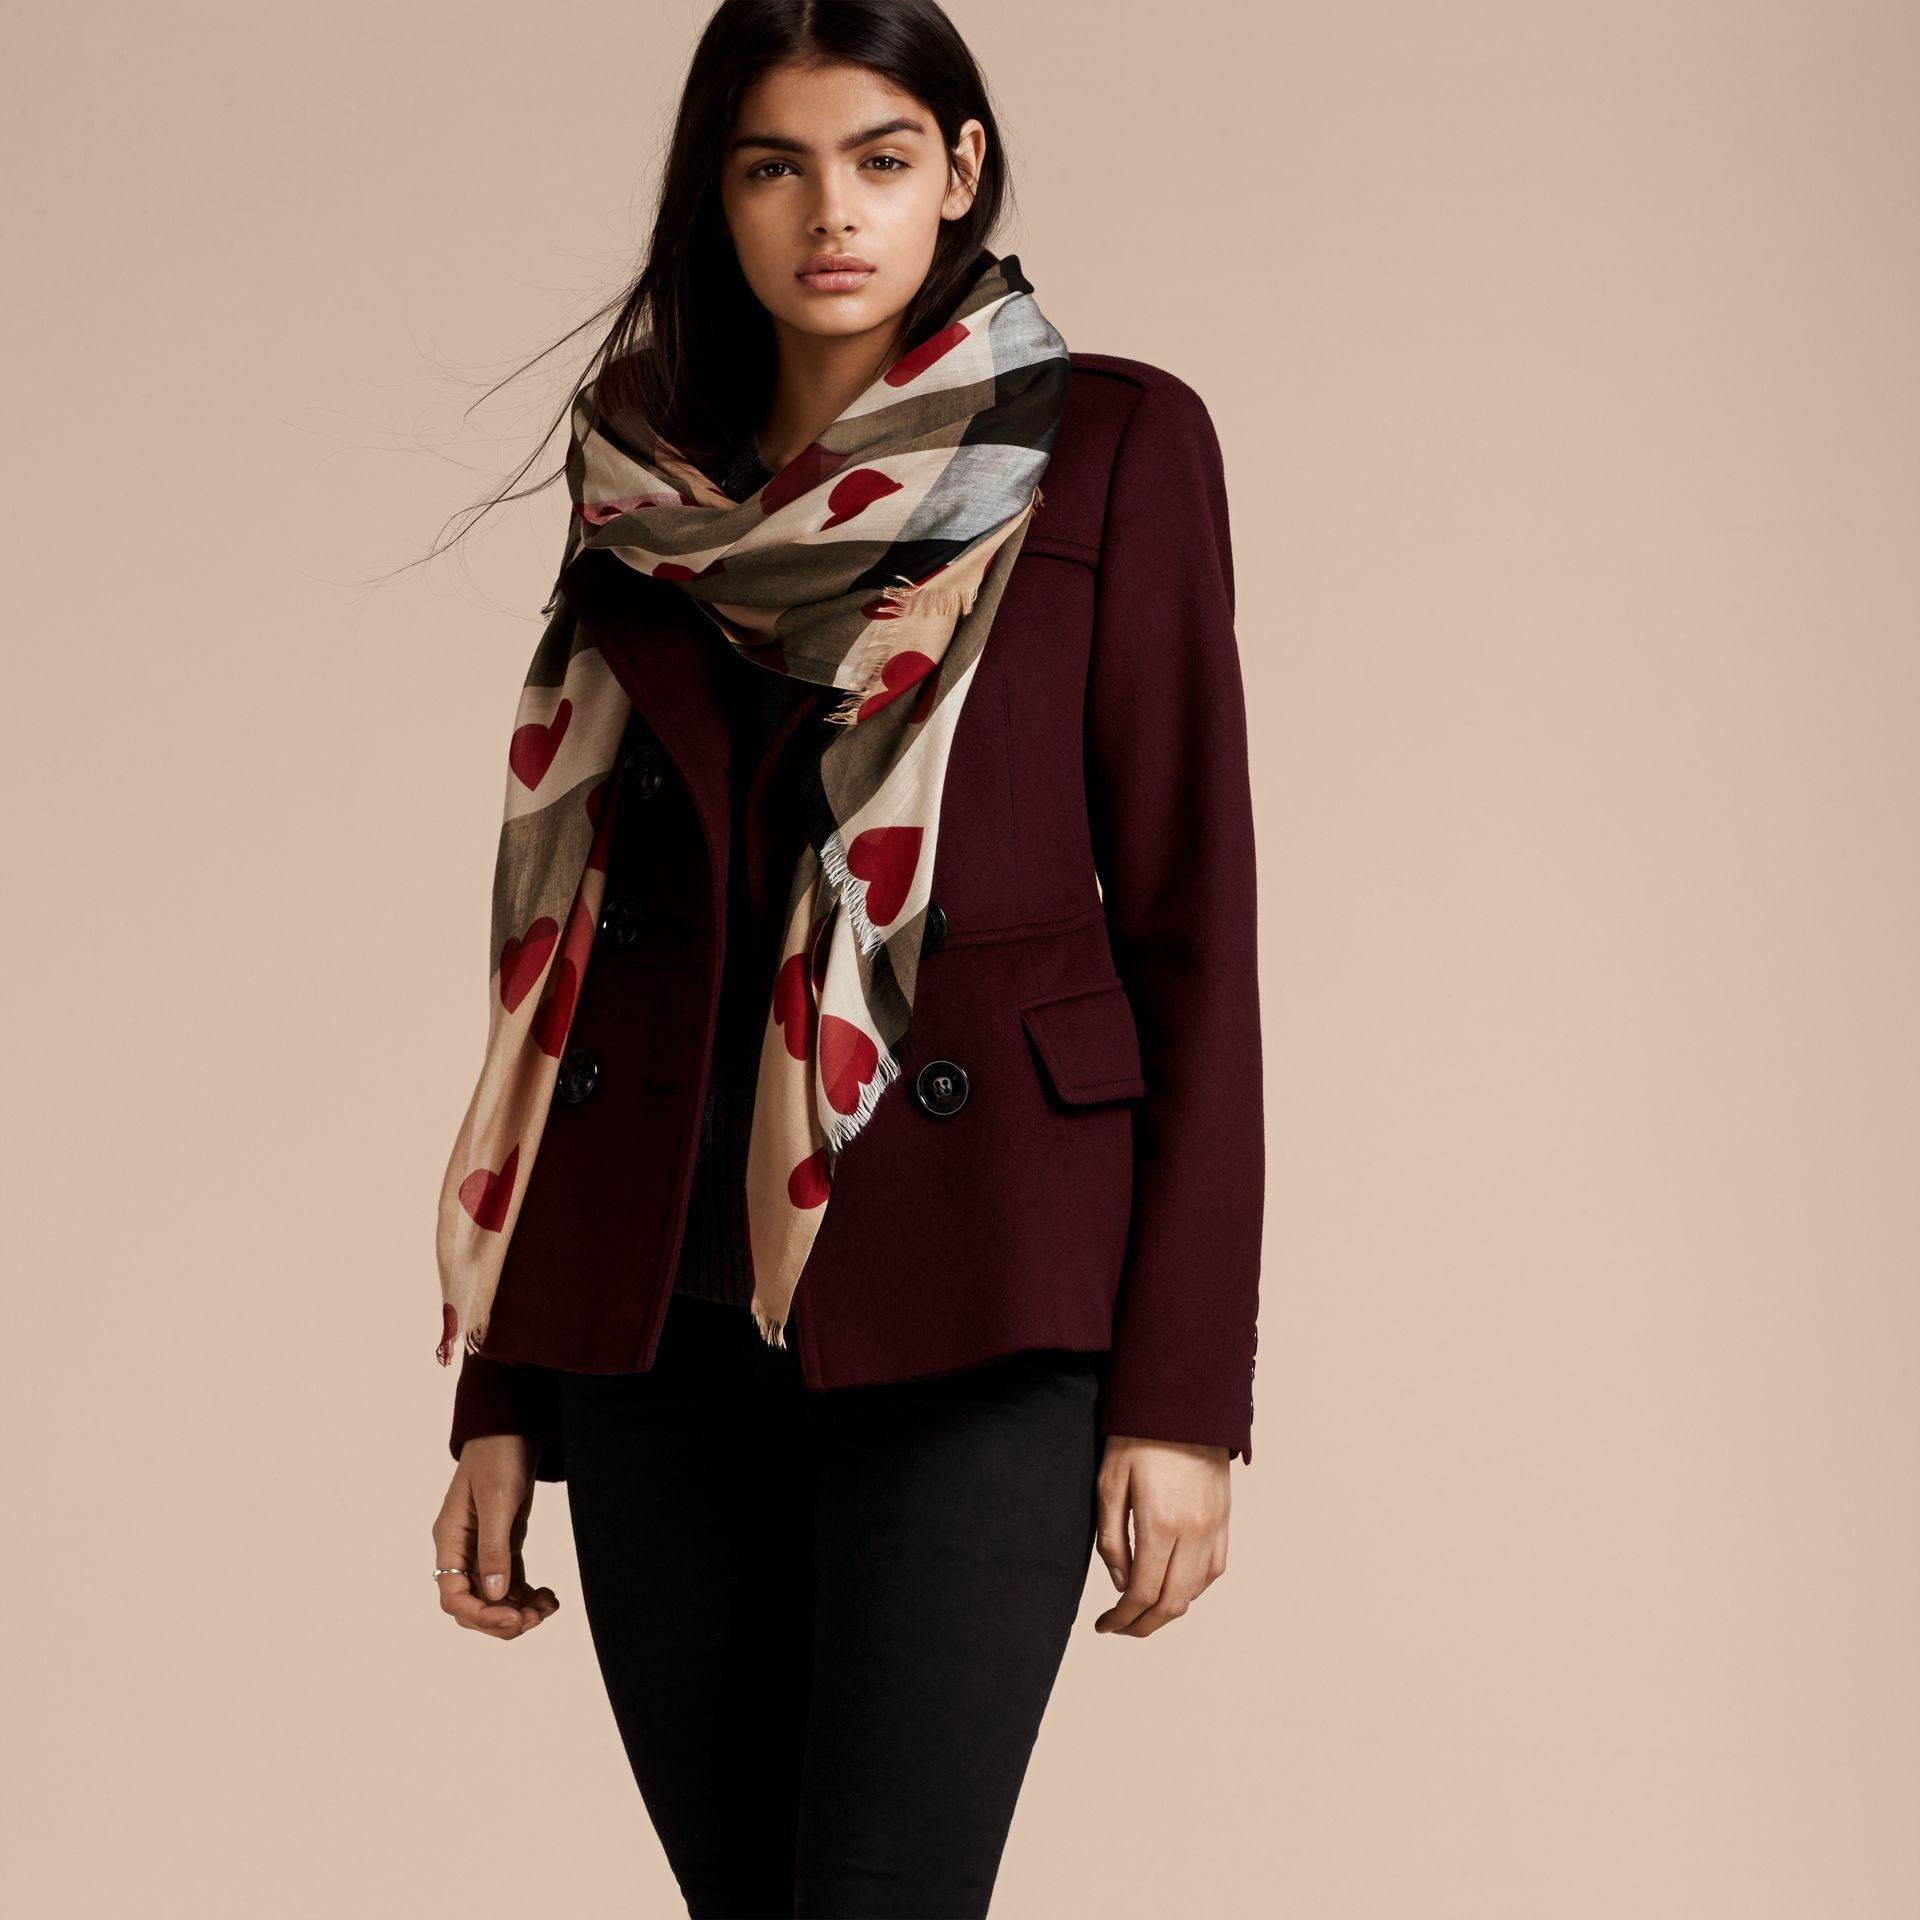 Heart and Check Modal and Cashmere Scarf in Camel/red - Women | Burberry - gallery image 3